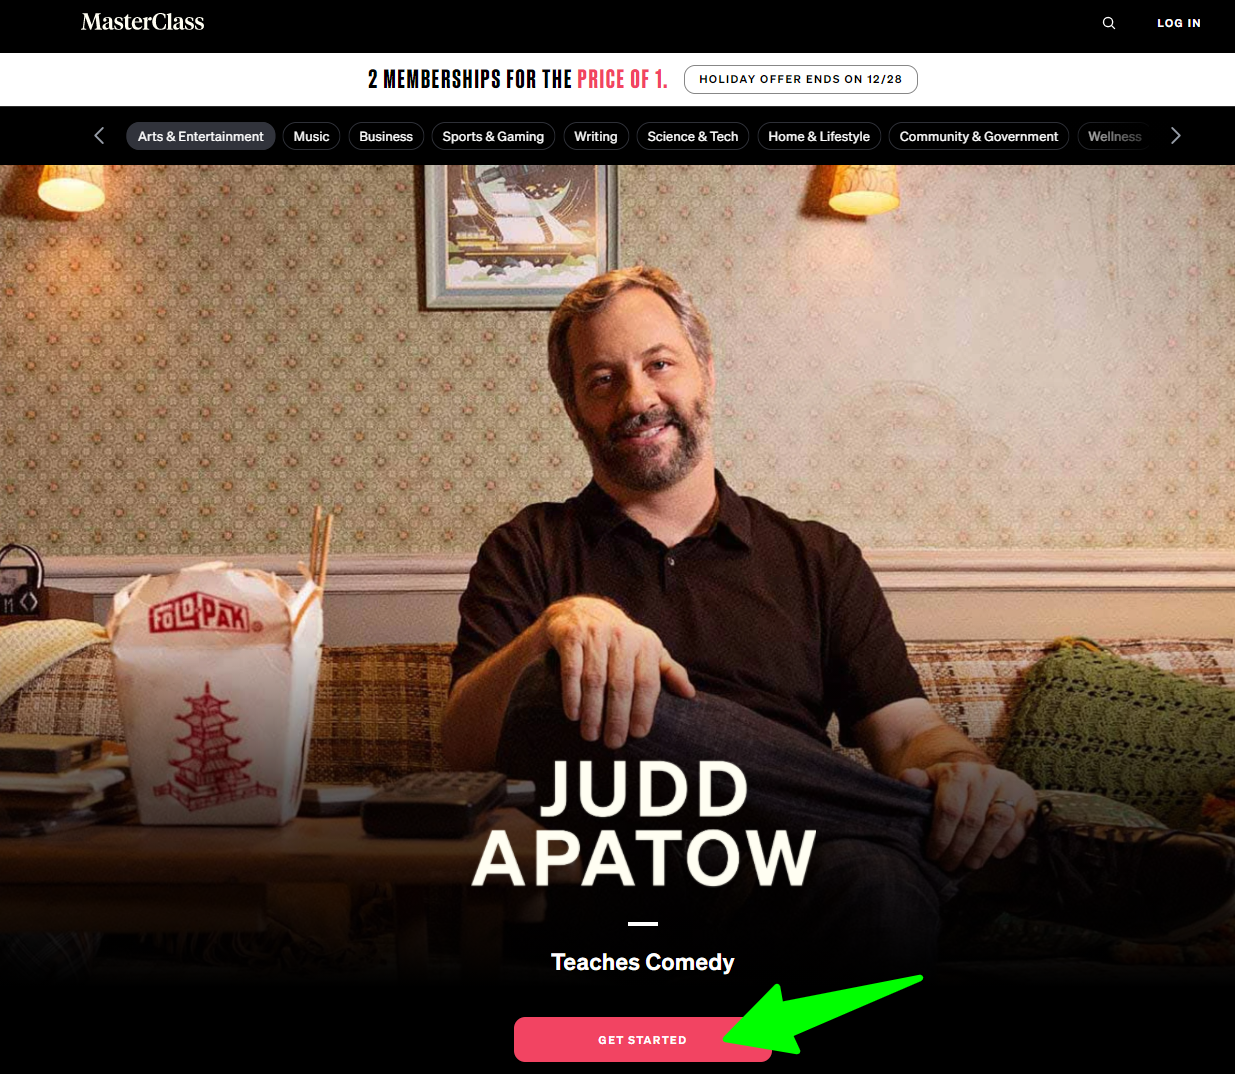 Judd-Apatow-Teaches-Comedy-MasterClass